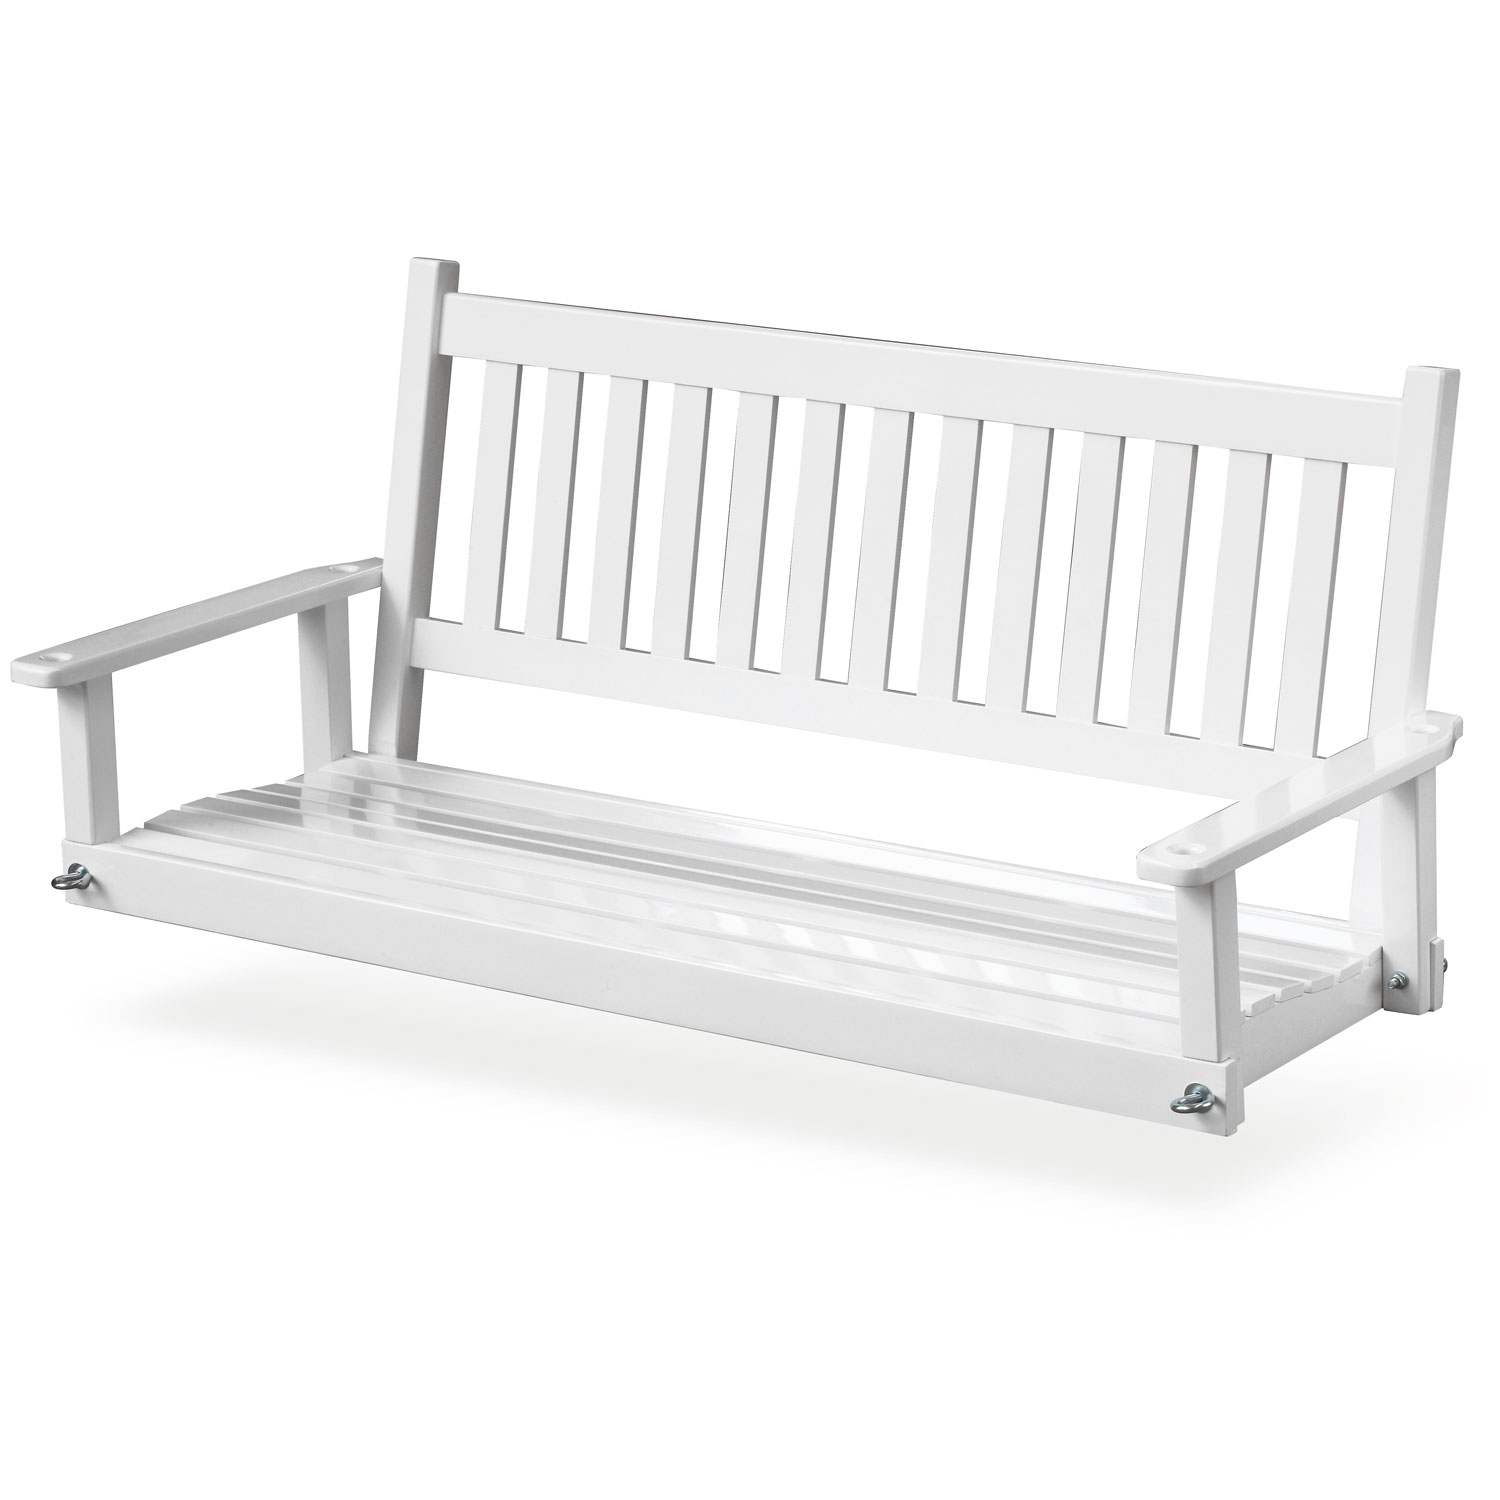 Plantation 58.5'' Wood Porch Swing - White Paint - HINK-855PSW-RTA